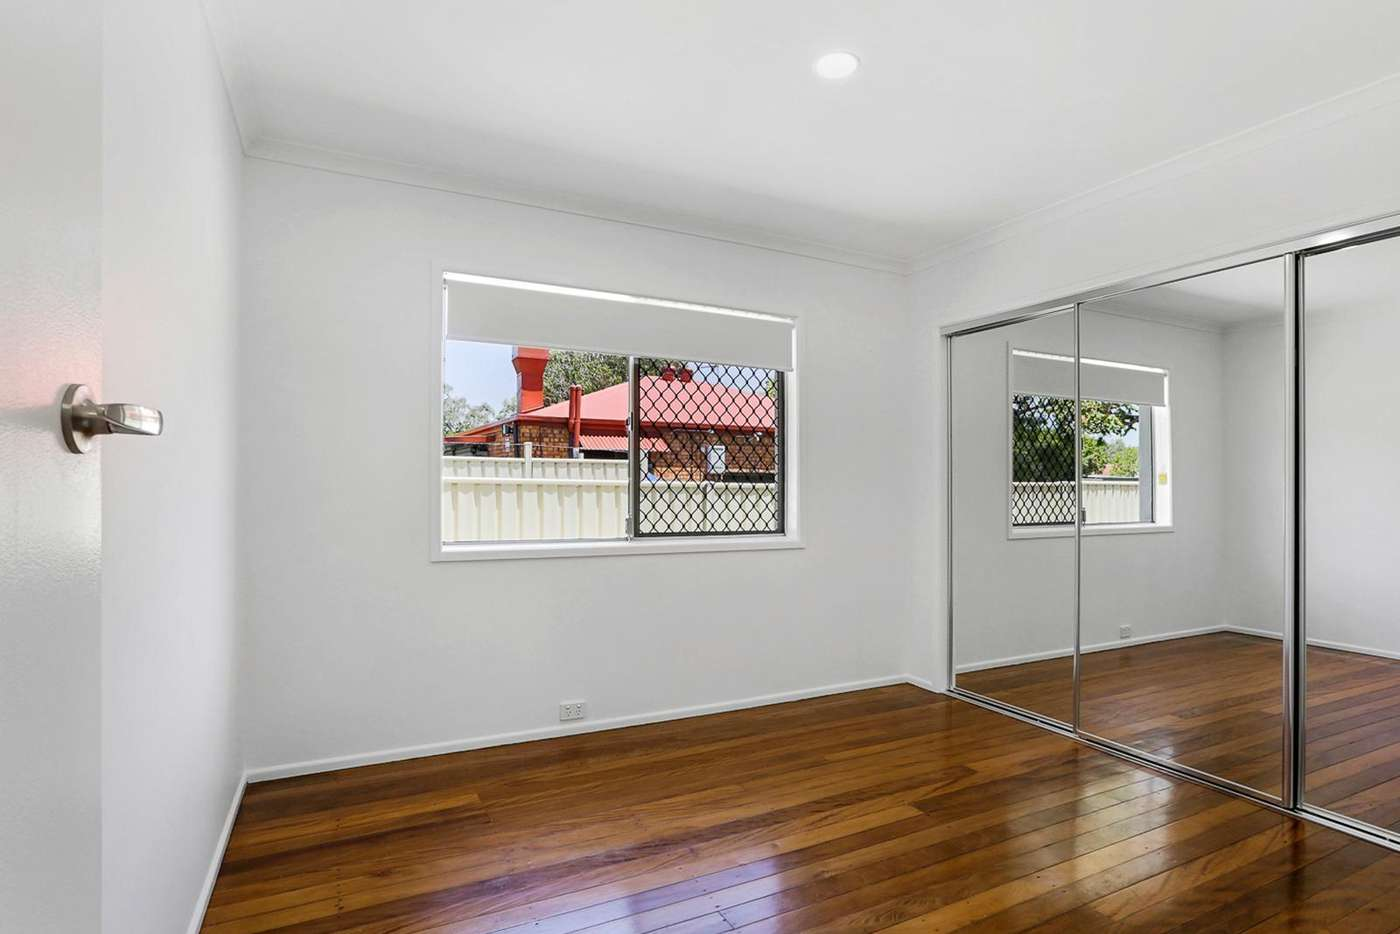 Seventh view of Homely house listing, 43 Bellevue Parade, Labrador QLD 4215